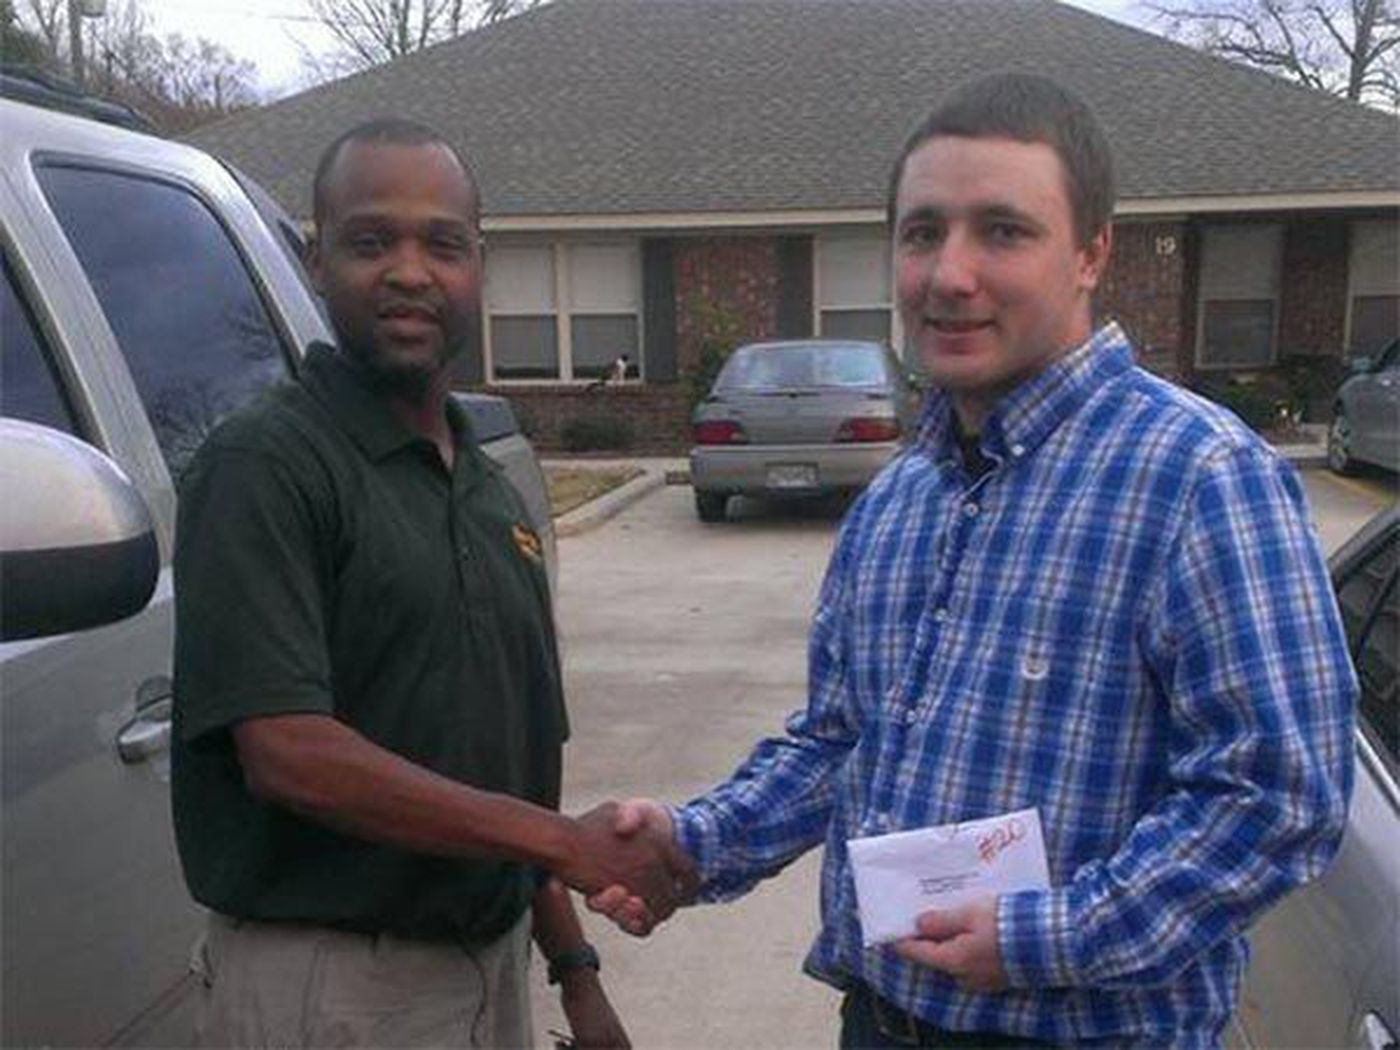 Hundreds raised for Wetumpka good Samaritan who returned $650